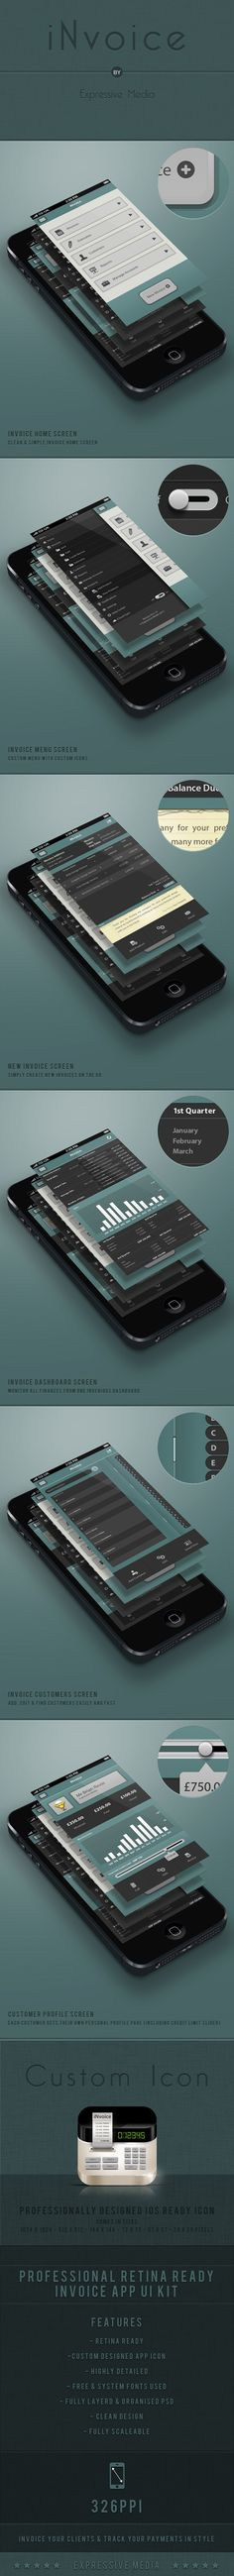 iNvoice by Expressive Media, via Behance